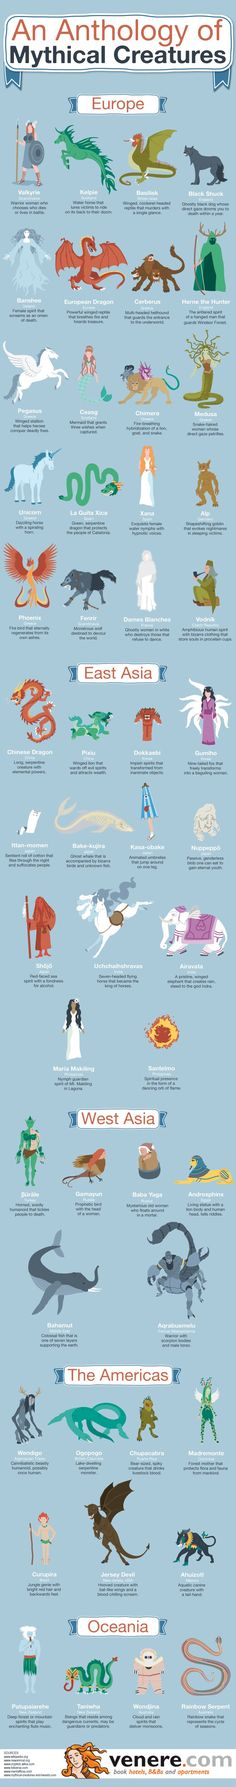 Writing Fantasy ... Infographic Showing Mythical Creatures of the World. #writingfantasy #writingbiz www.OneMorePress.com It would be great if I could find someone willing to dress up and help me photograph some of these creatures in human shape.